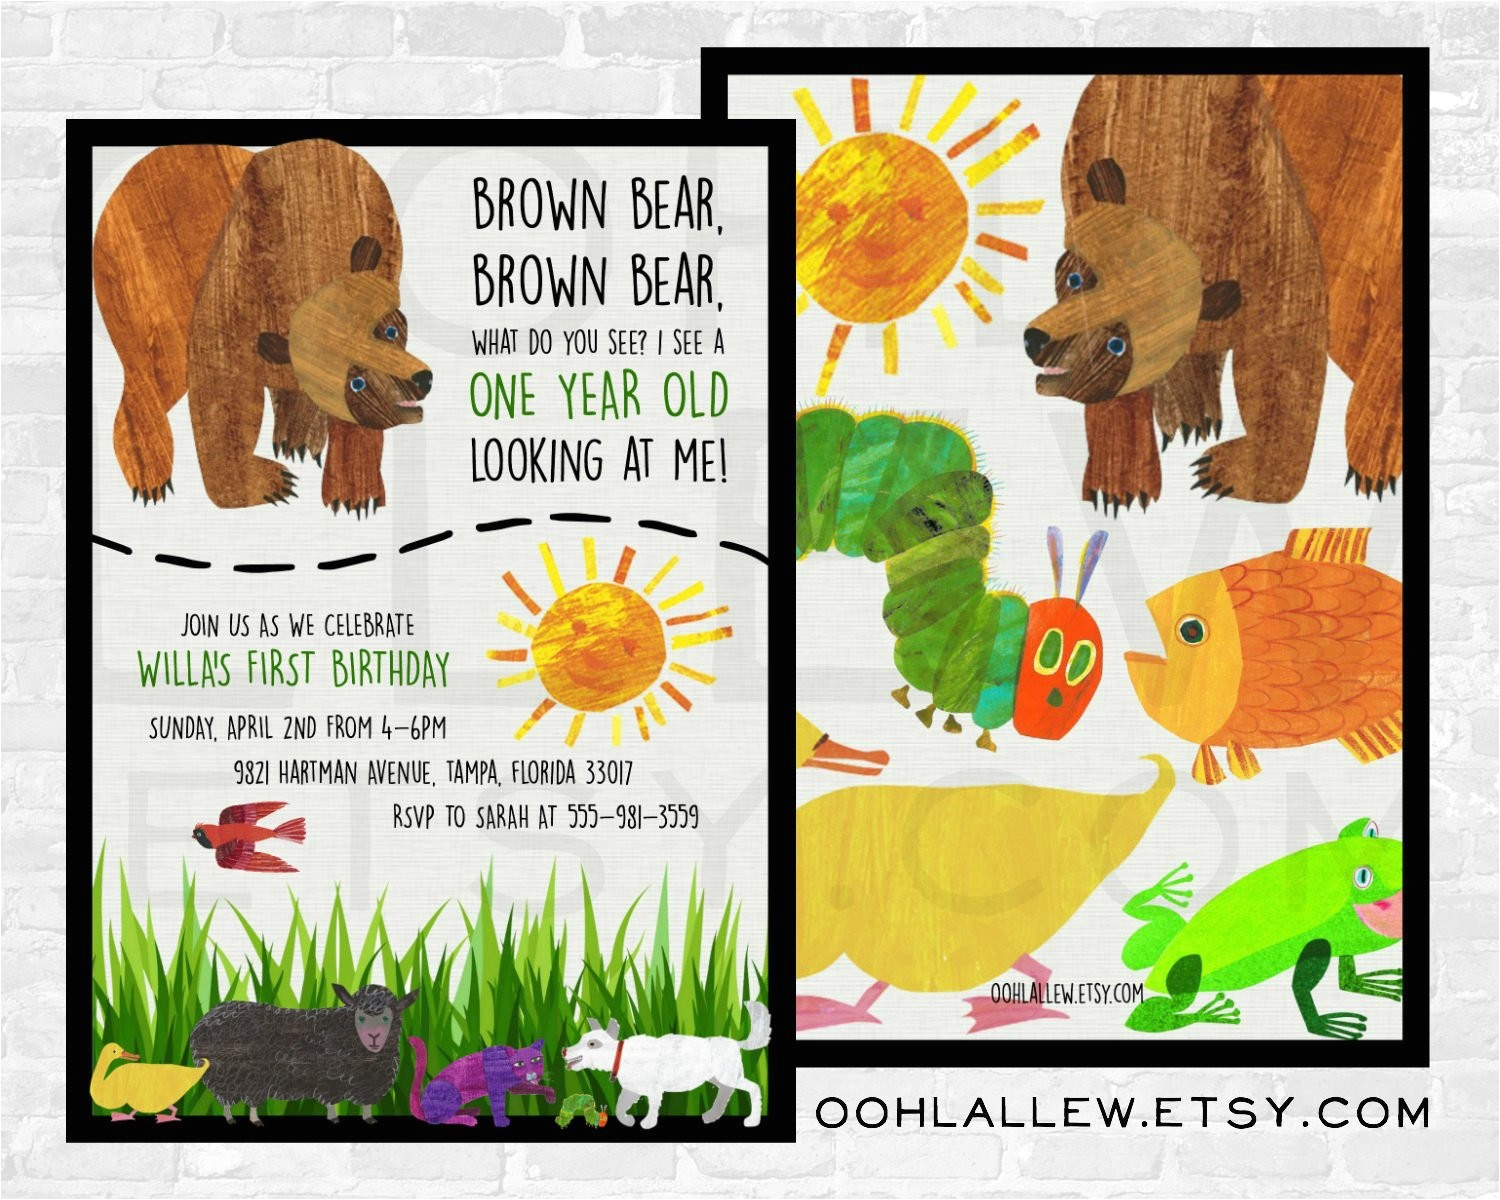 brown bear invitation brown bear